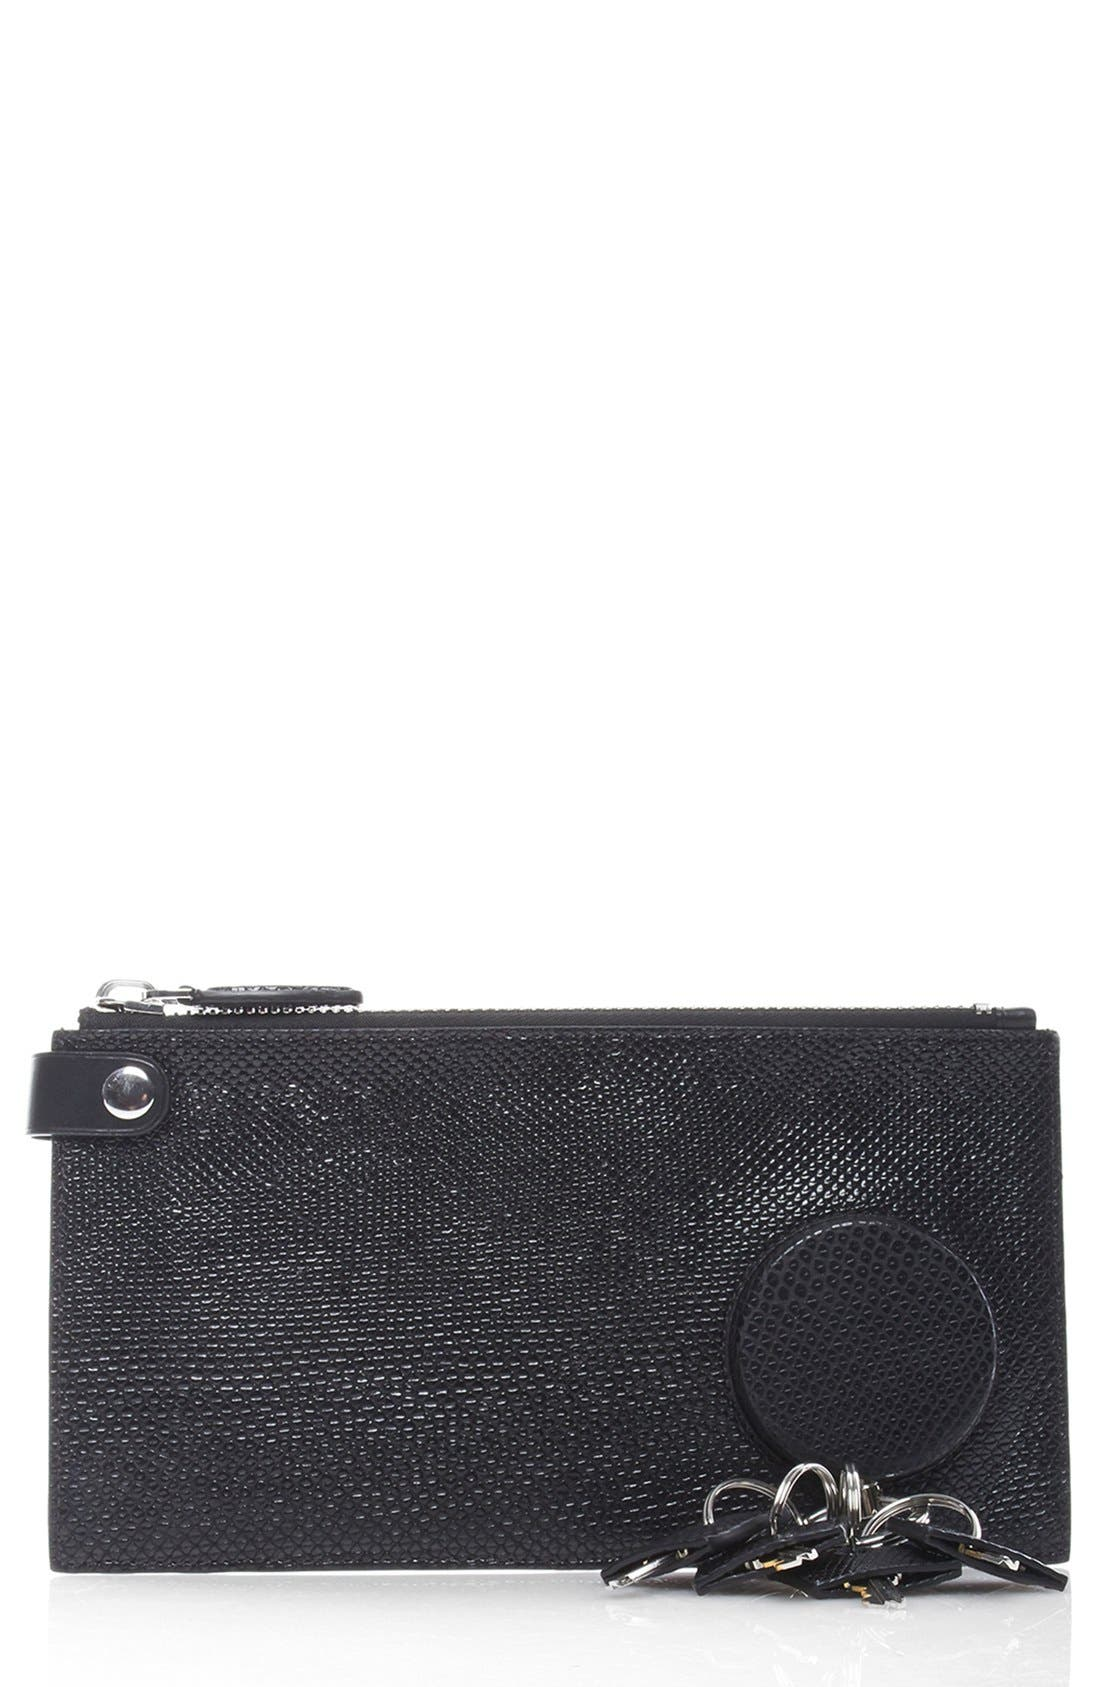 Main Image - Alexander Wang 'Runway' Key Clutch